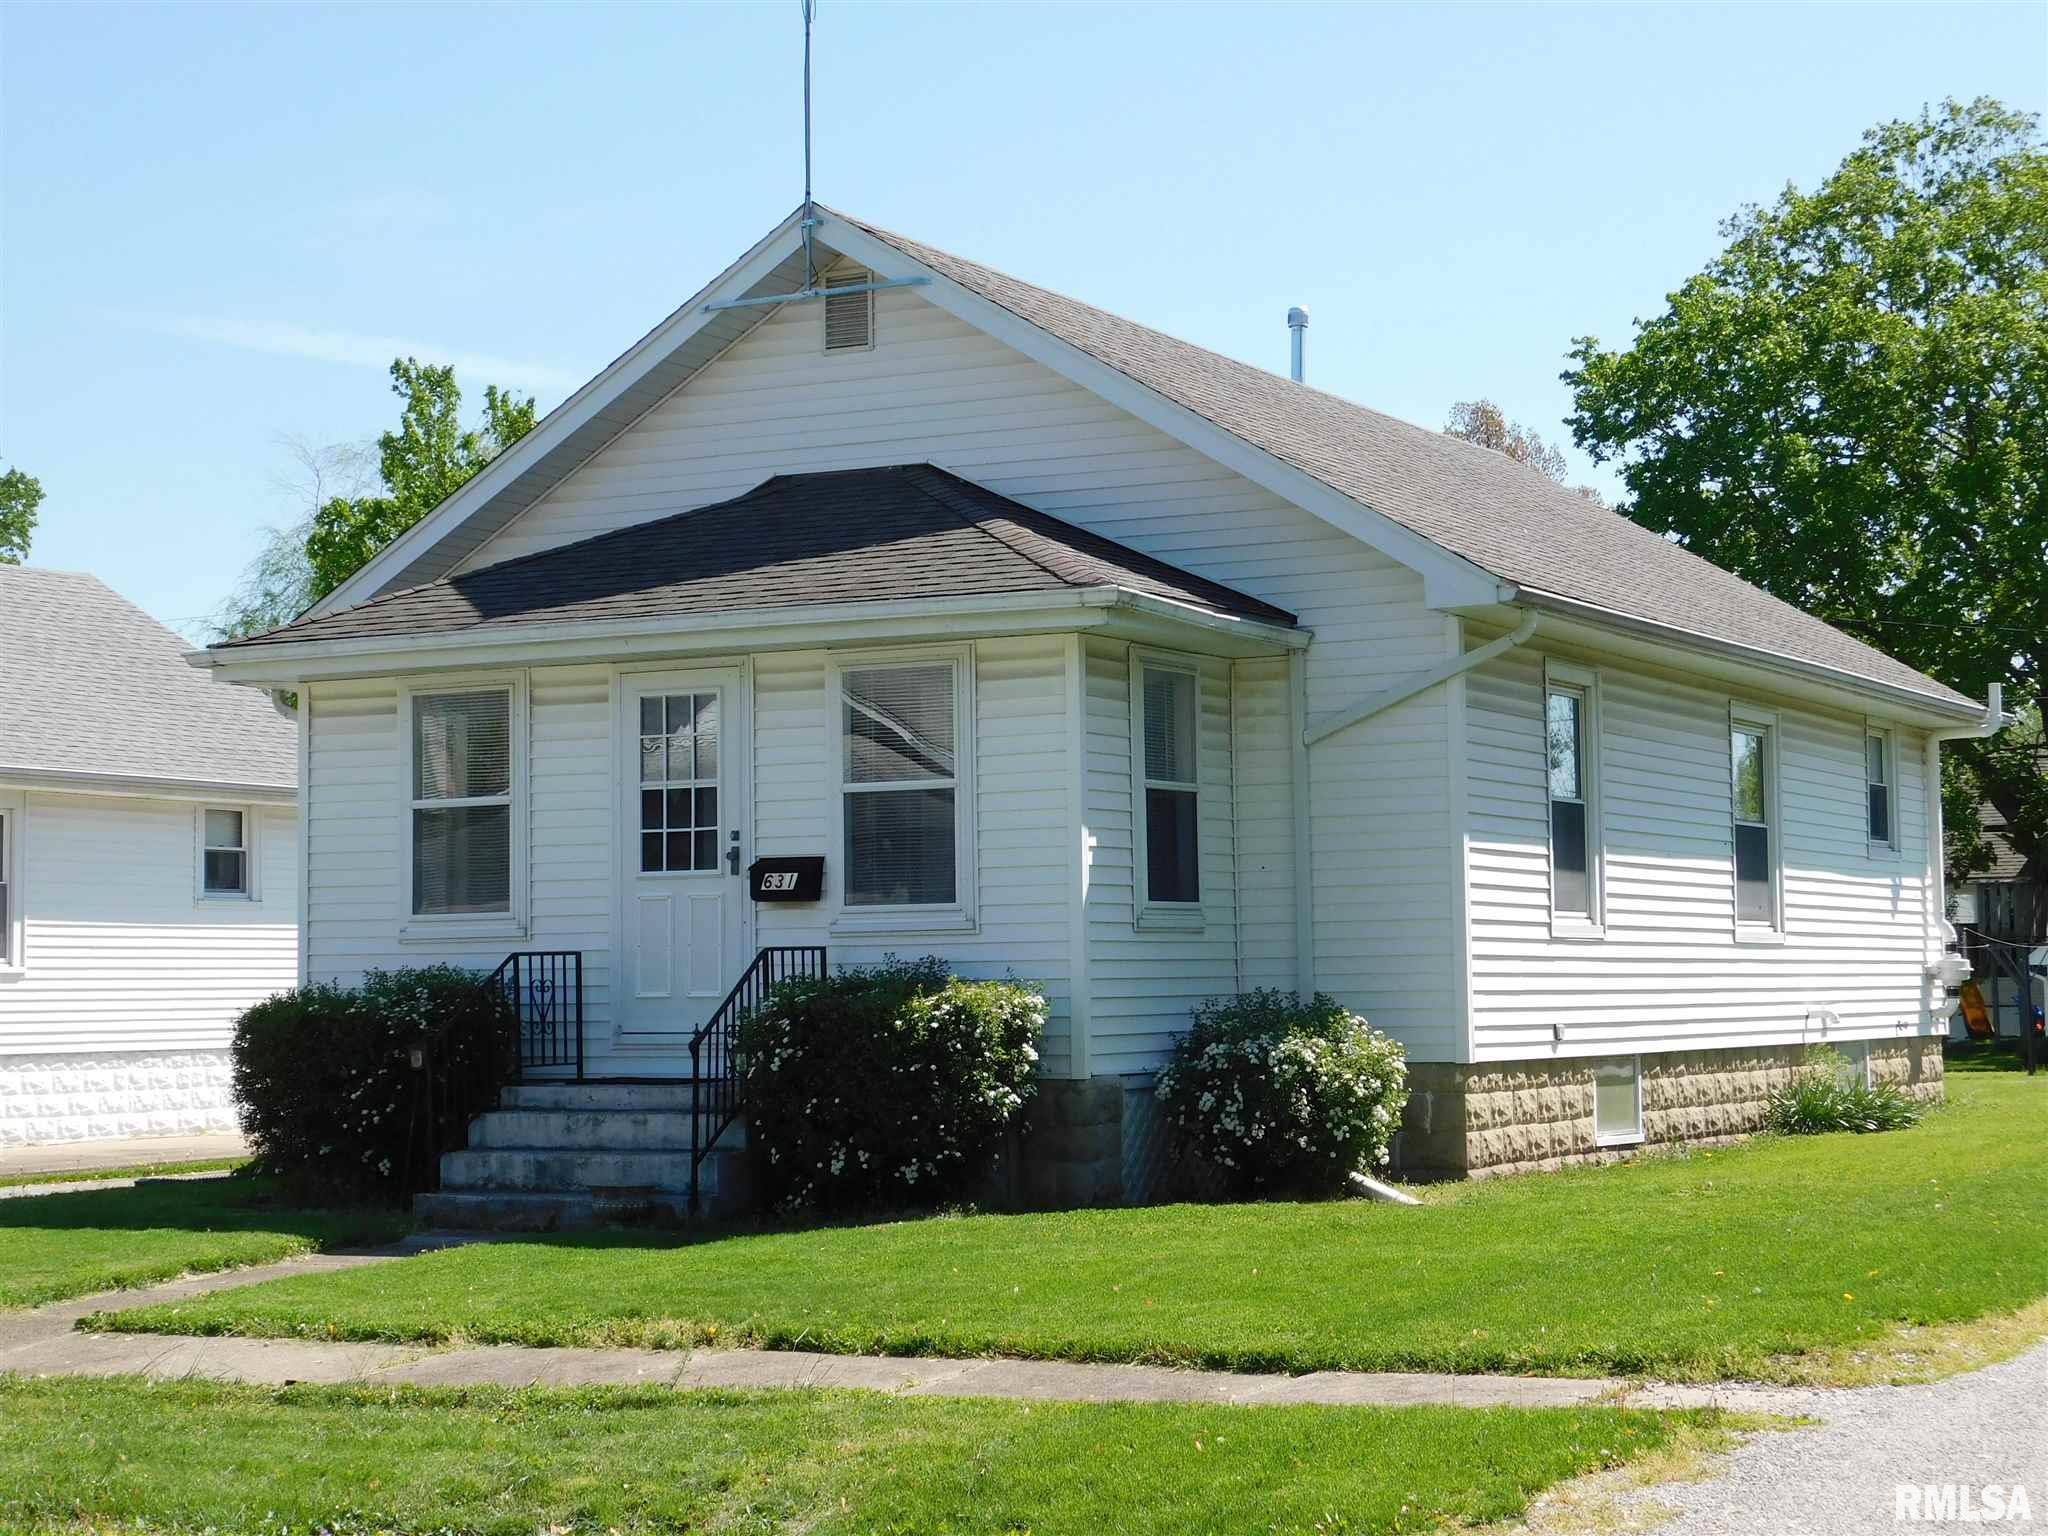 631 N SUMNER Property Photo - Carlinville, IL real estate listing